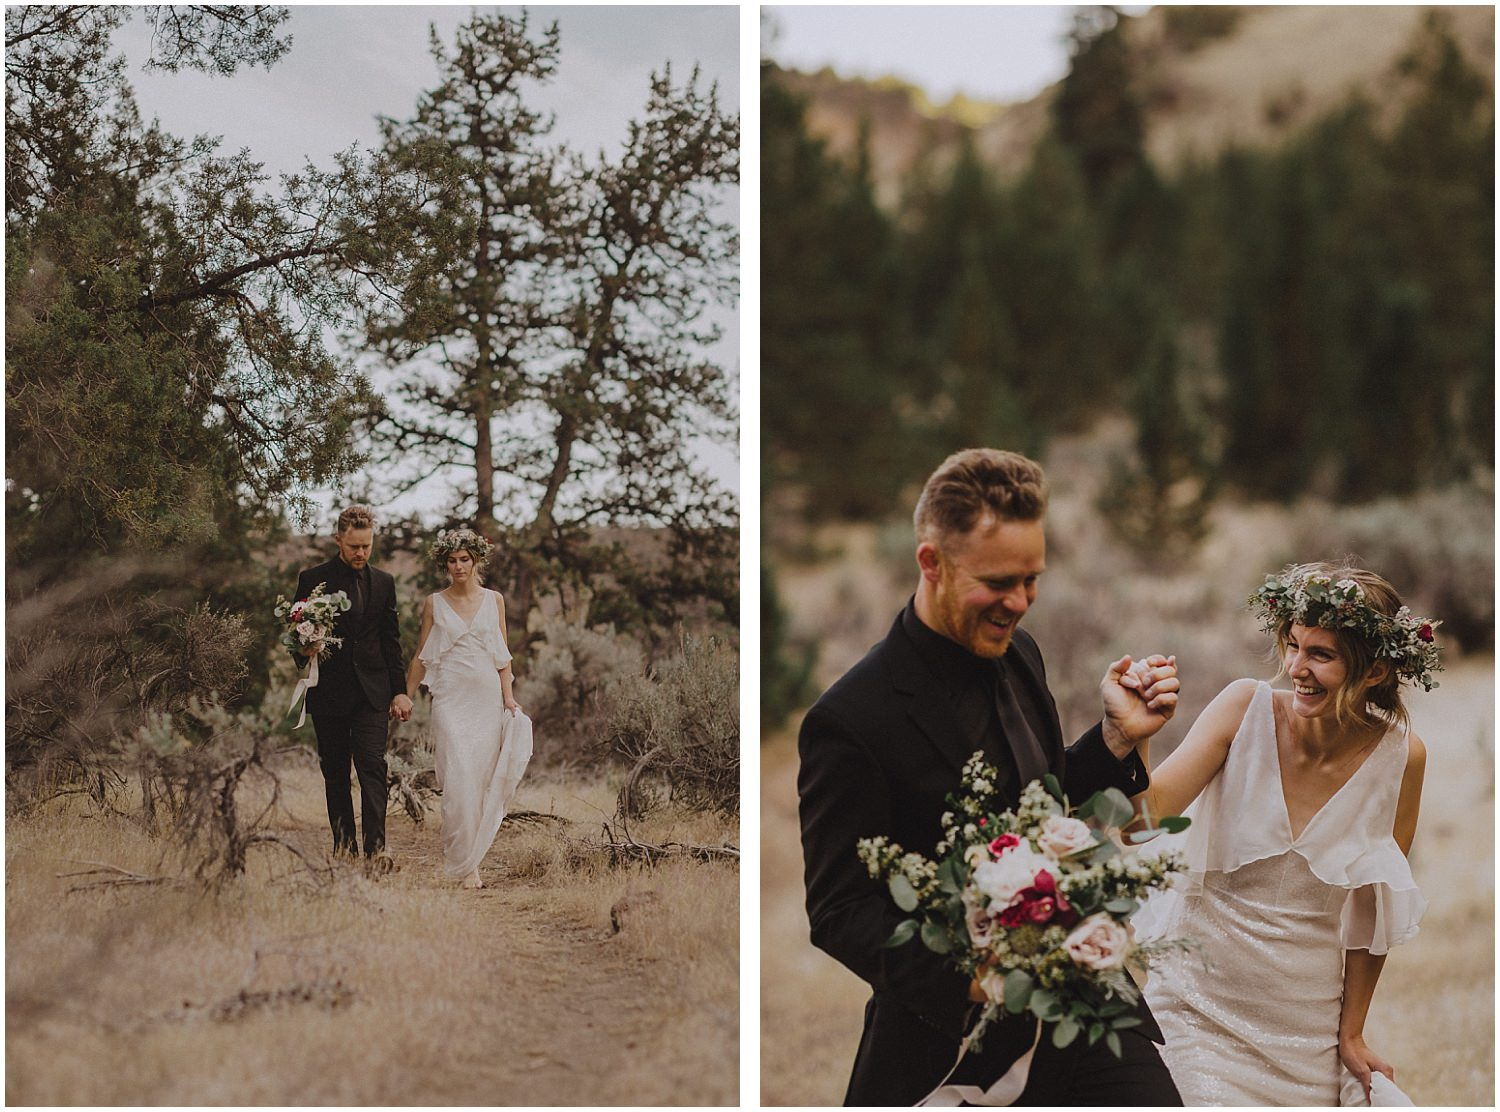 Smith Rock elopement couple walking and laughing together oregon elopement and wedding photographer kyle szeto